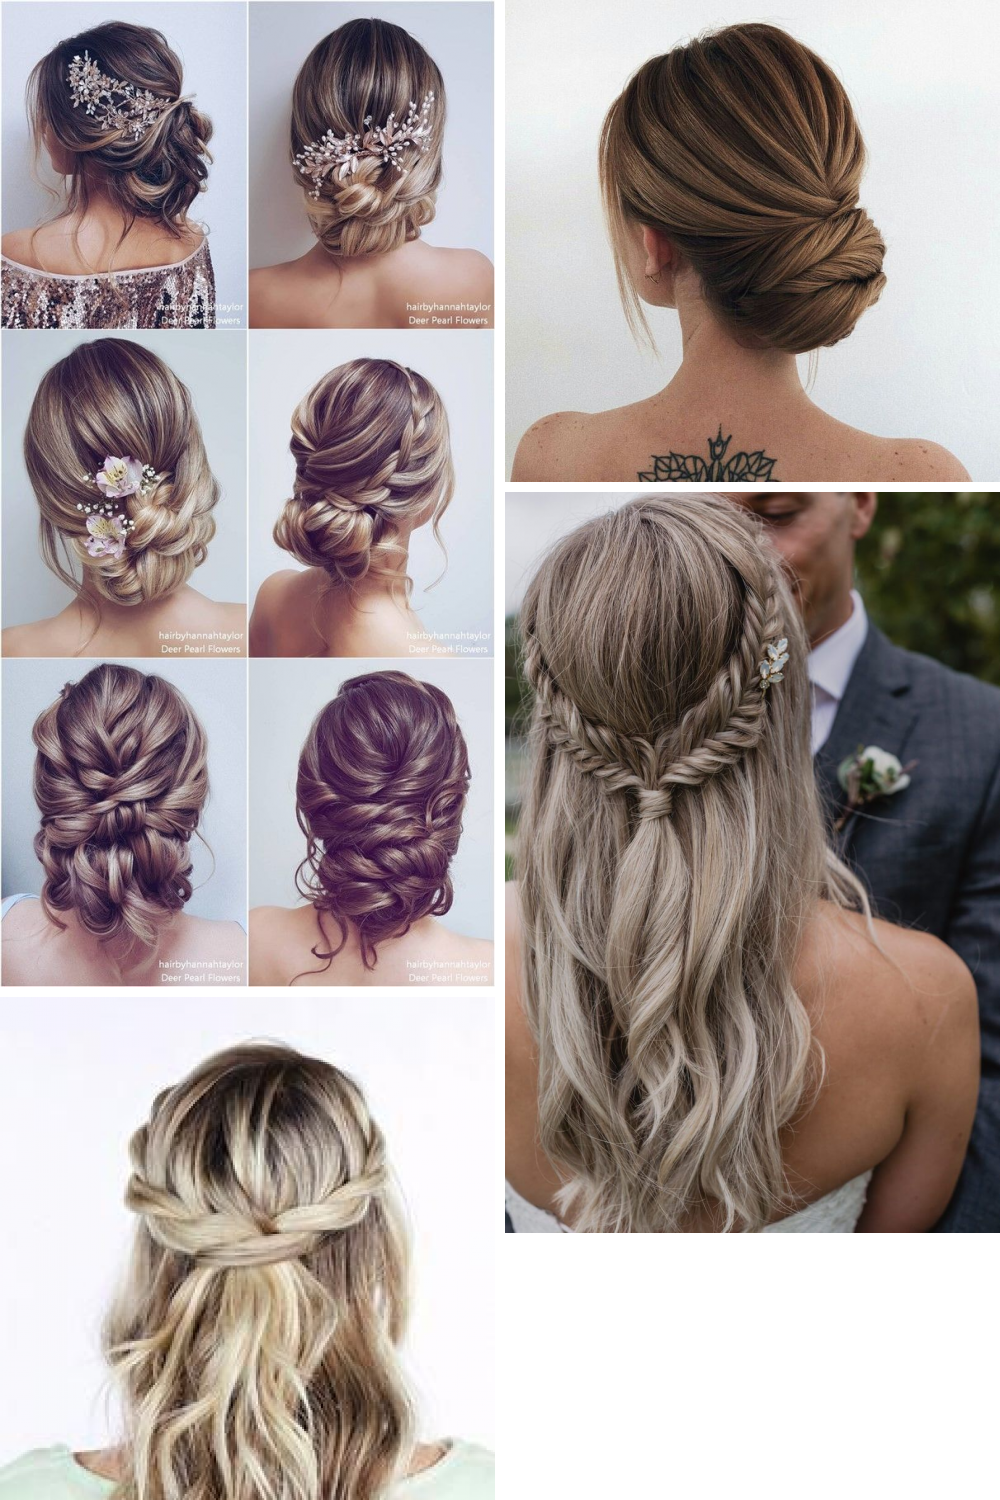 29 Brilliant Wedding Hairstyle Pictures Ideas Designs Hair Styles Hair Pictures Wedding Hair Up